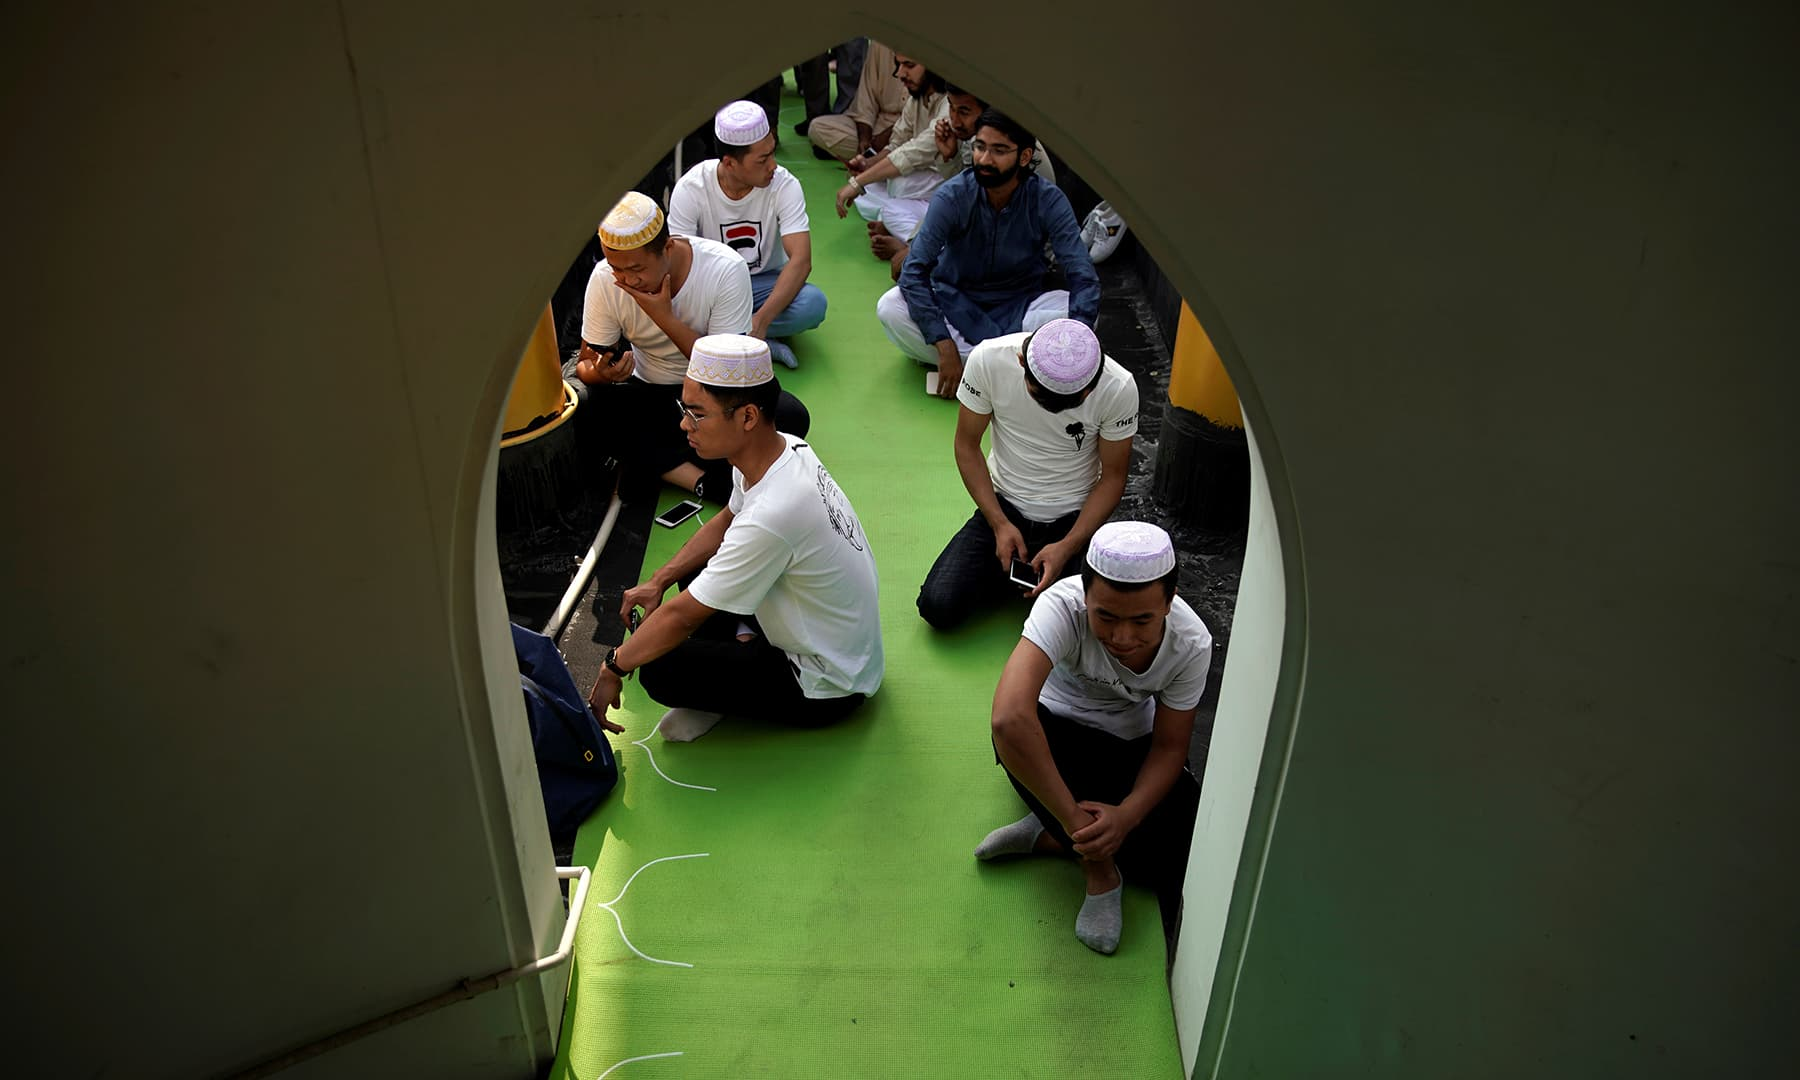 Muslims attend the morning prayers of Eidul Fitr at a mosque in Shanghai, China on June 5. — Reuters